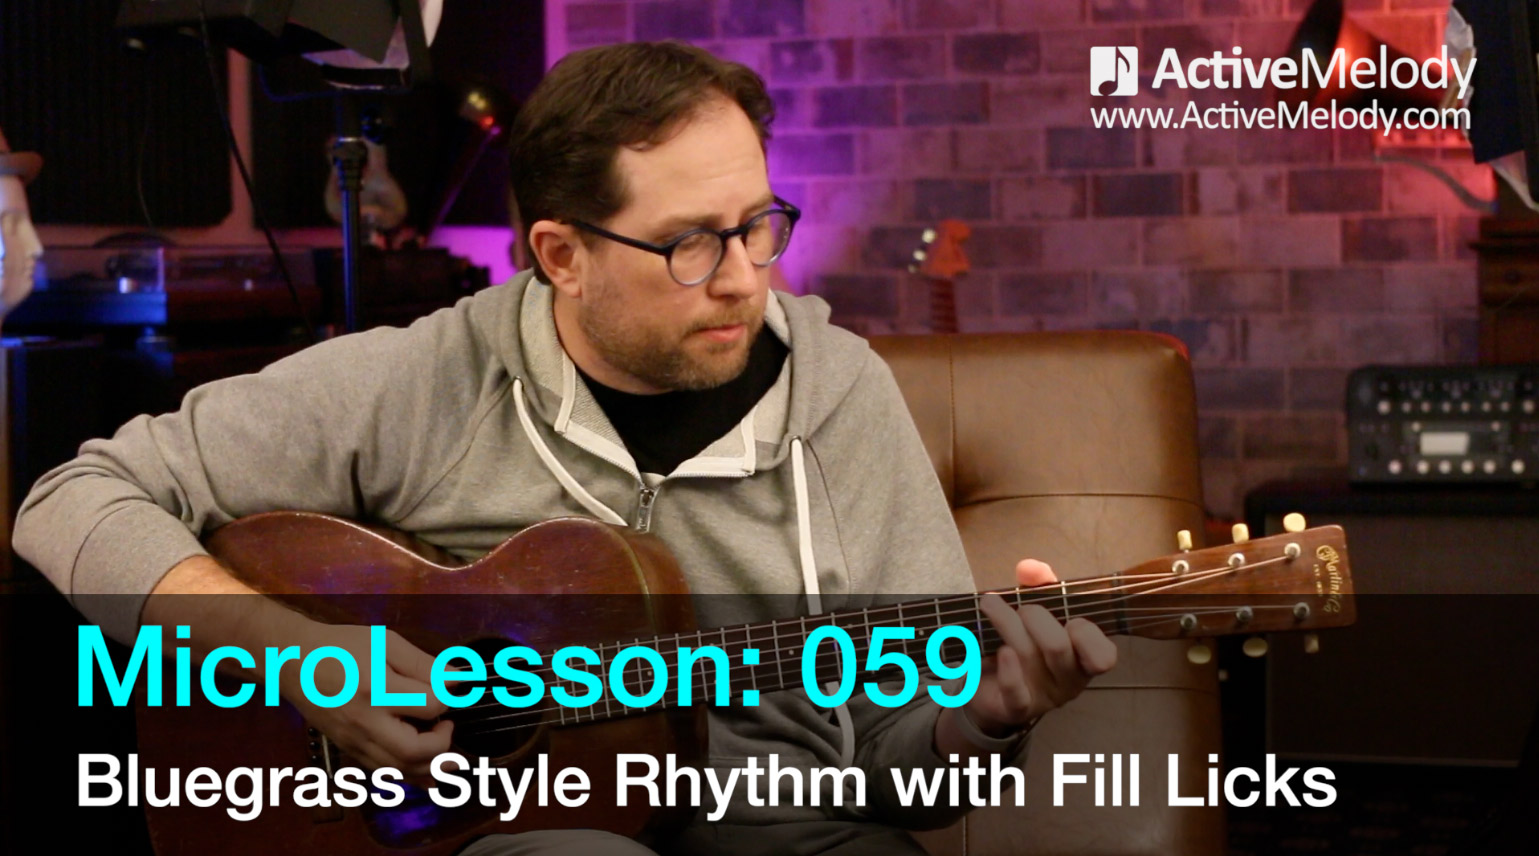 MicroLesson: 059 – Bluegrass Style Rhythm with Fill Licks